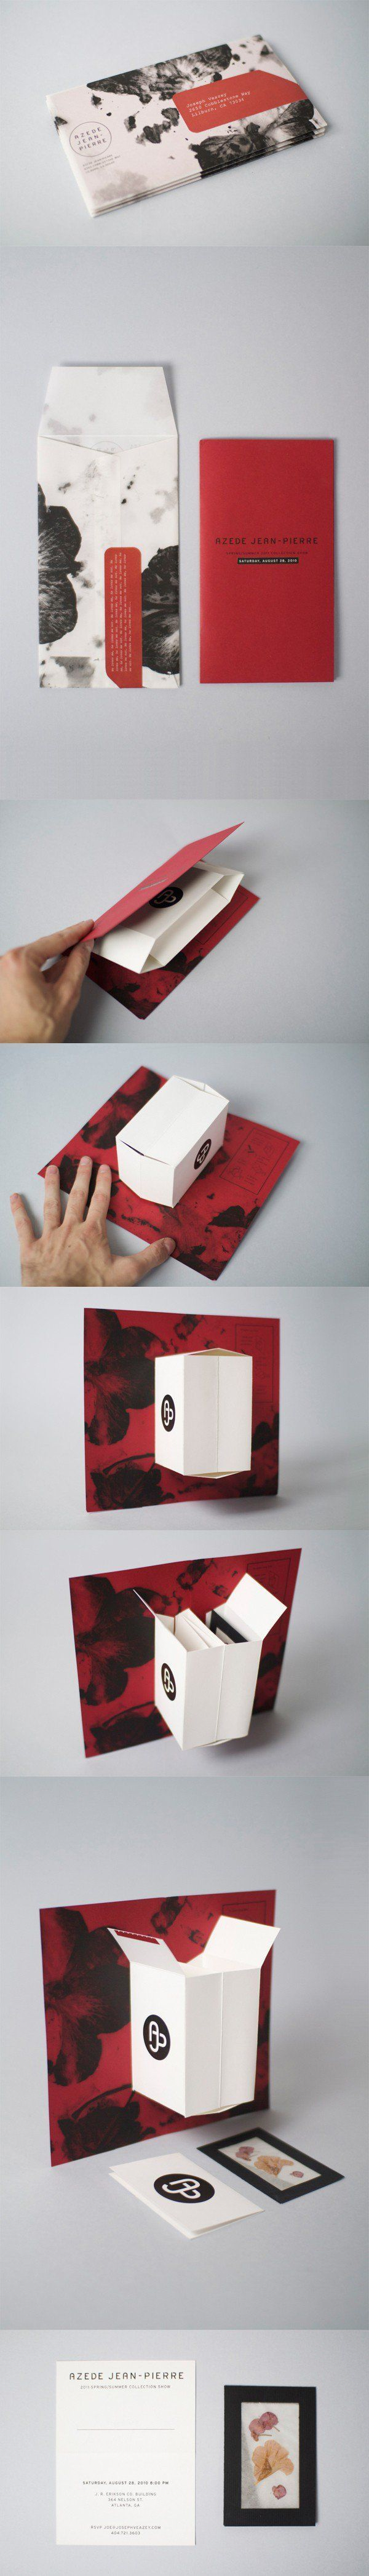 Beautiful red and black packaging.